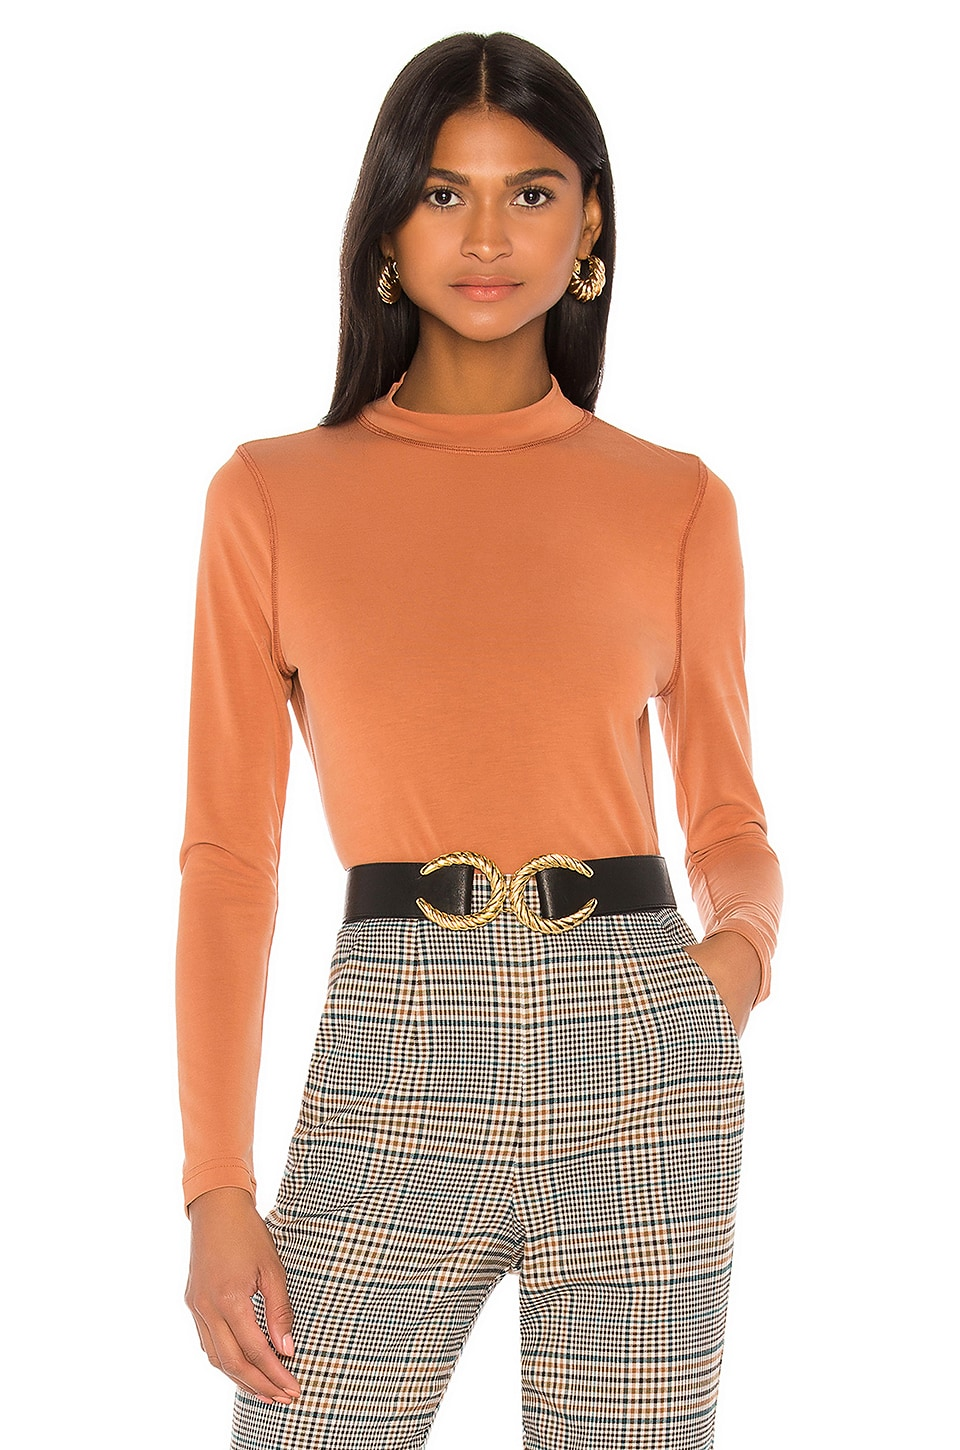 L'Academie The Mirla Top in Terracotta